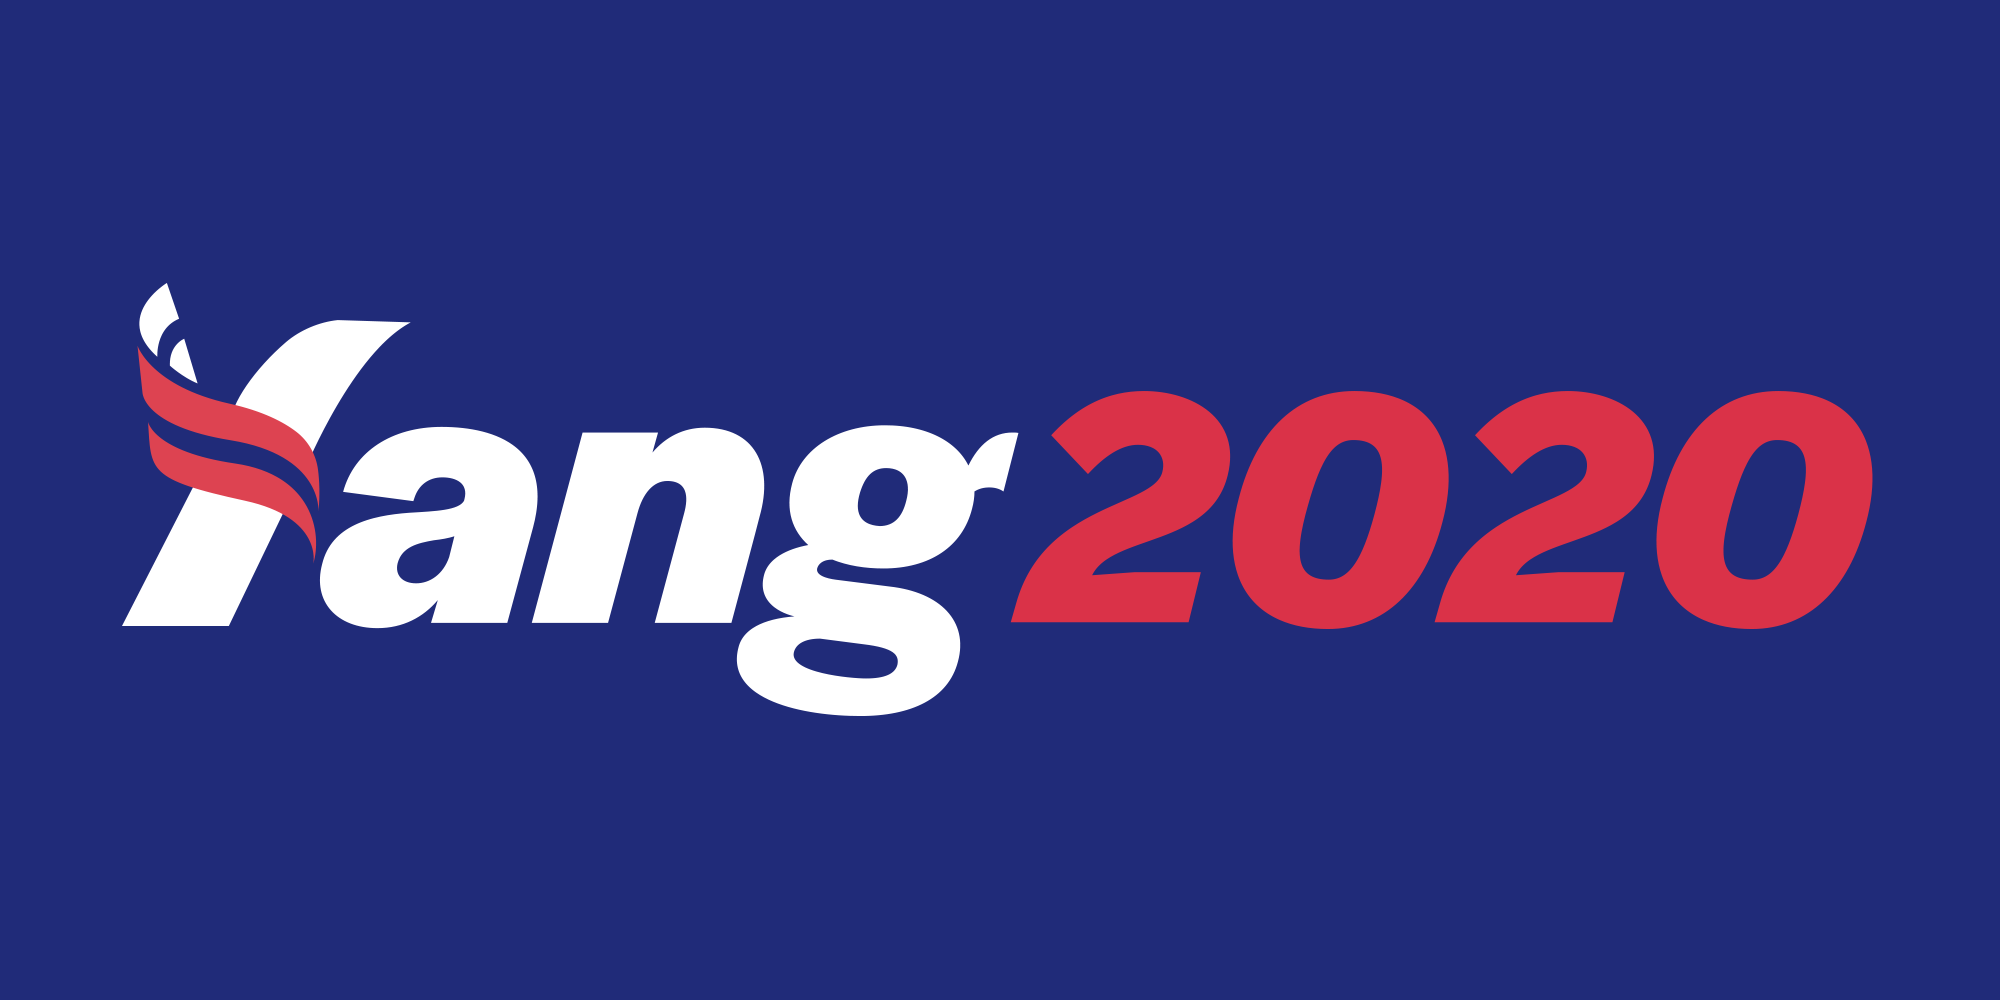 Image result for yang campaign logo""